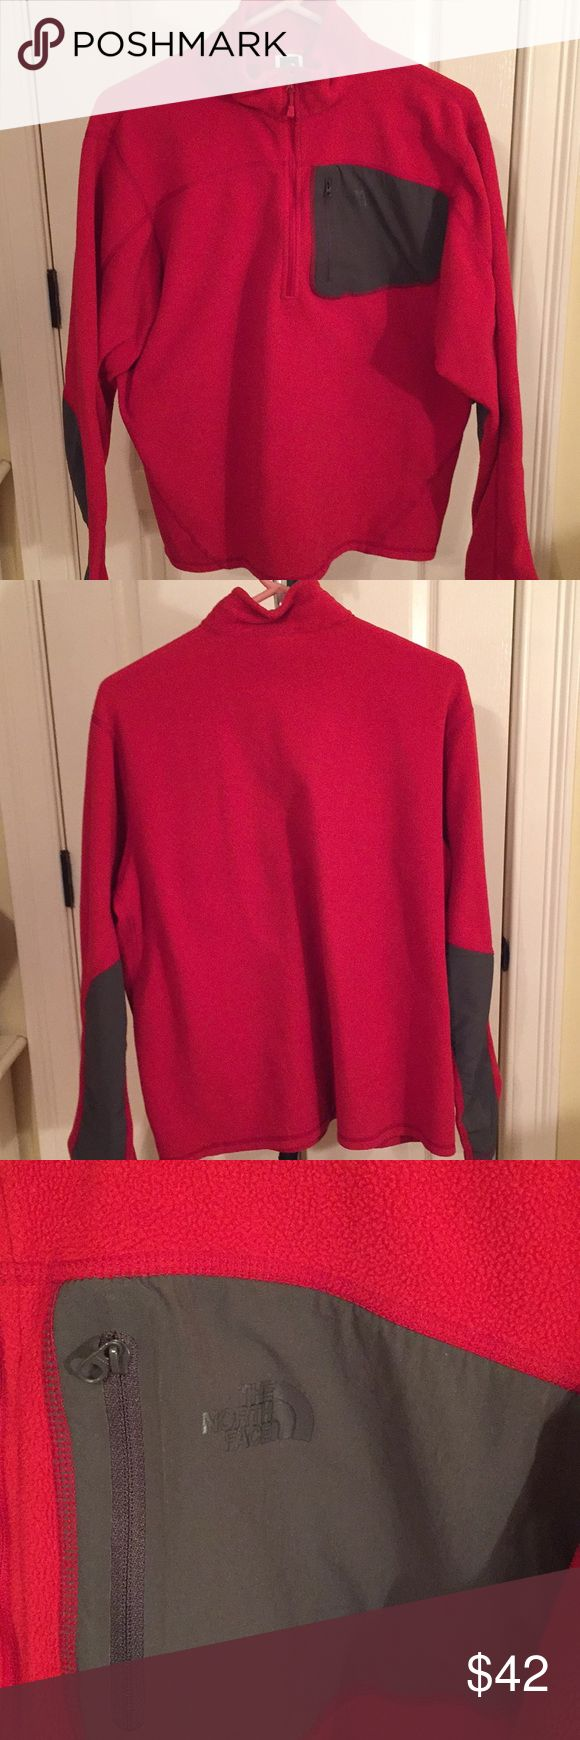 Mens North Face jacket size LARGE Red North Face jacket with grey accents. 3/4 zip. Nice condition. Size large North Face Jackets & Coats Lightweight & Shirt Jackets